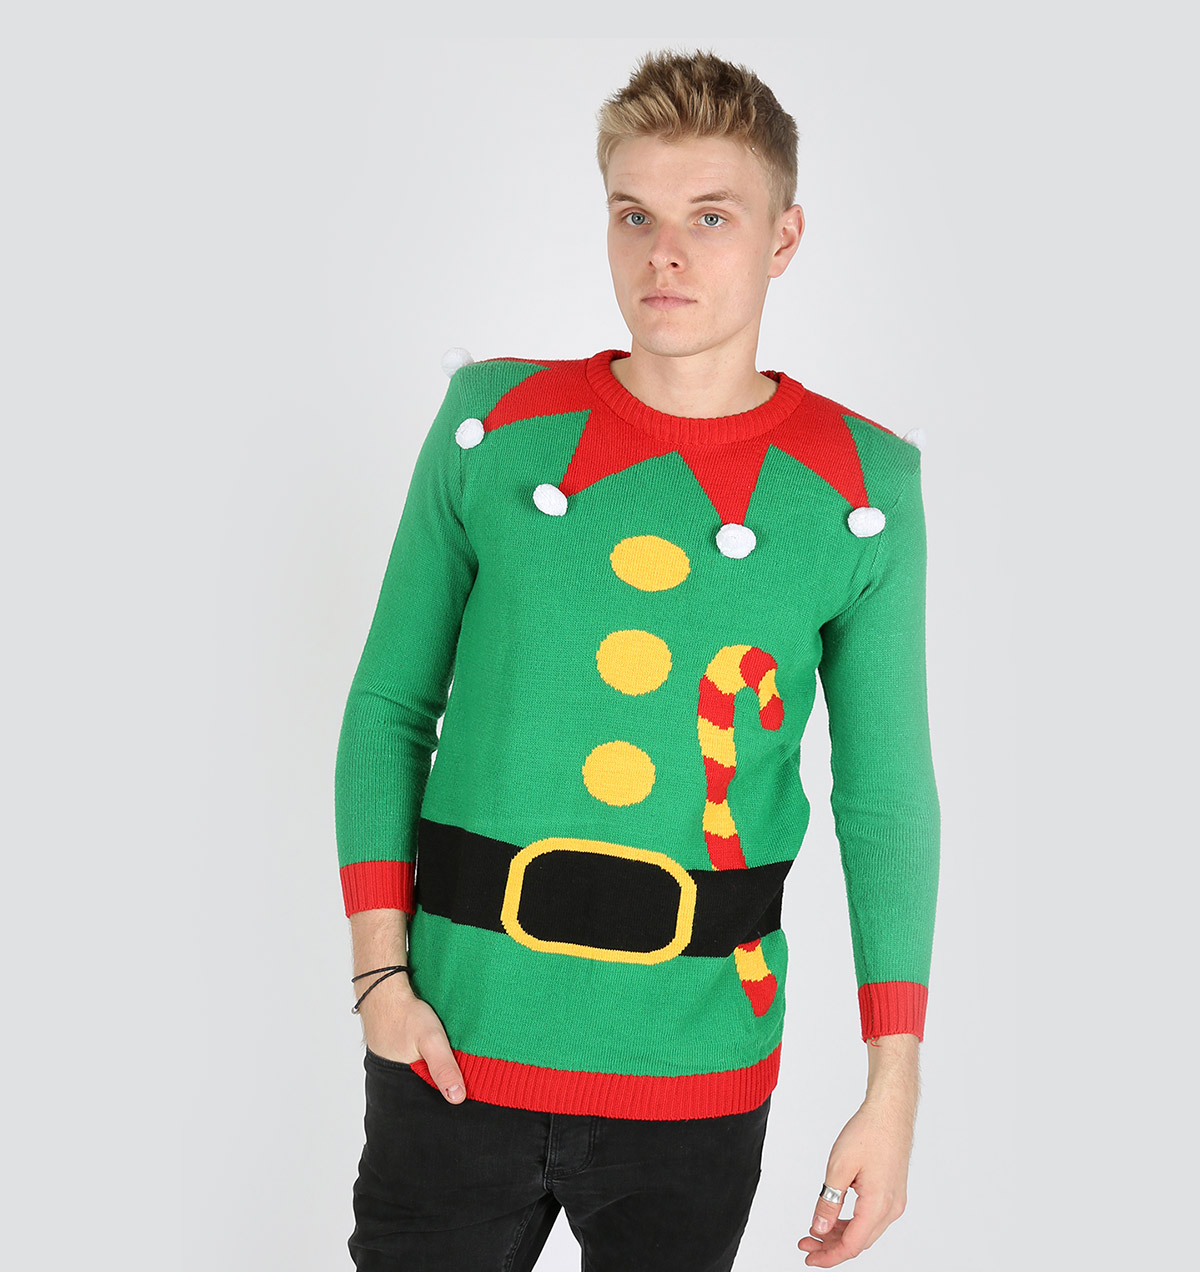 Knitted Christmas Elf Sweater Green Body - Ugly Christmas Sweaters ...